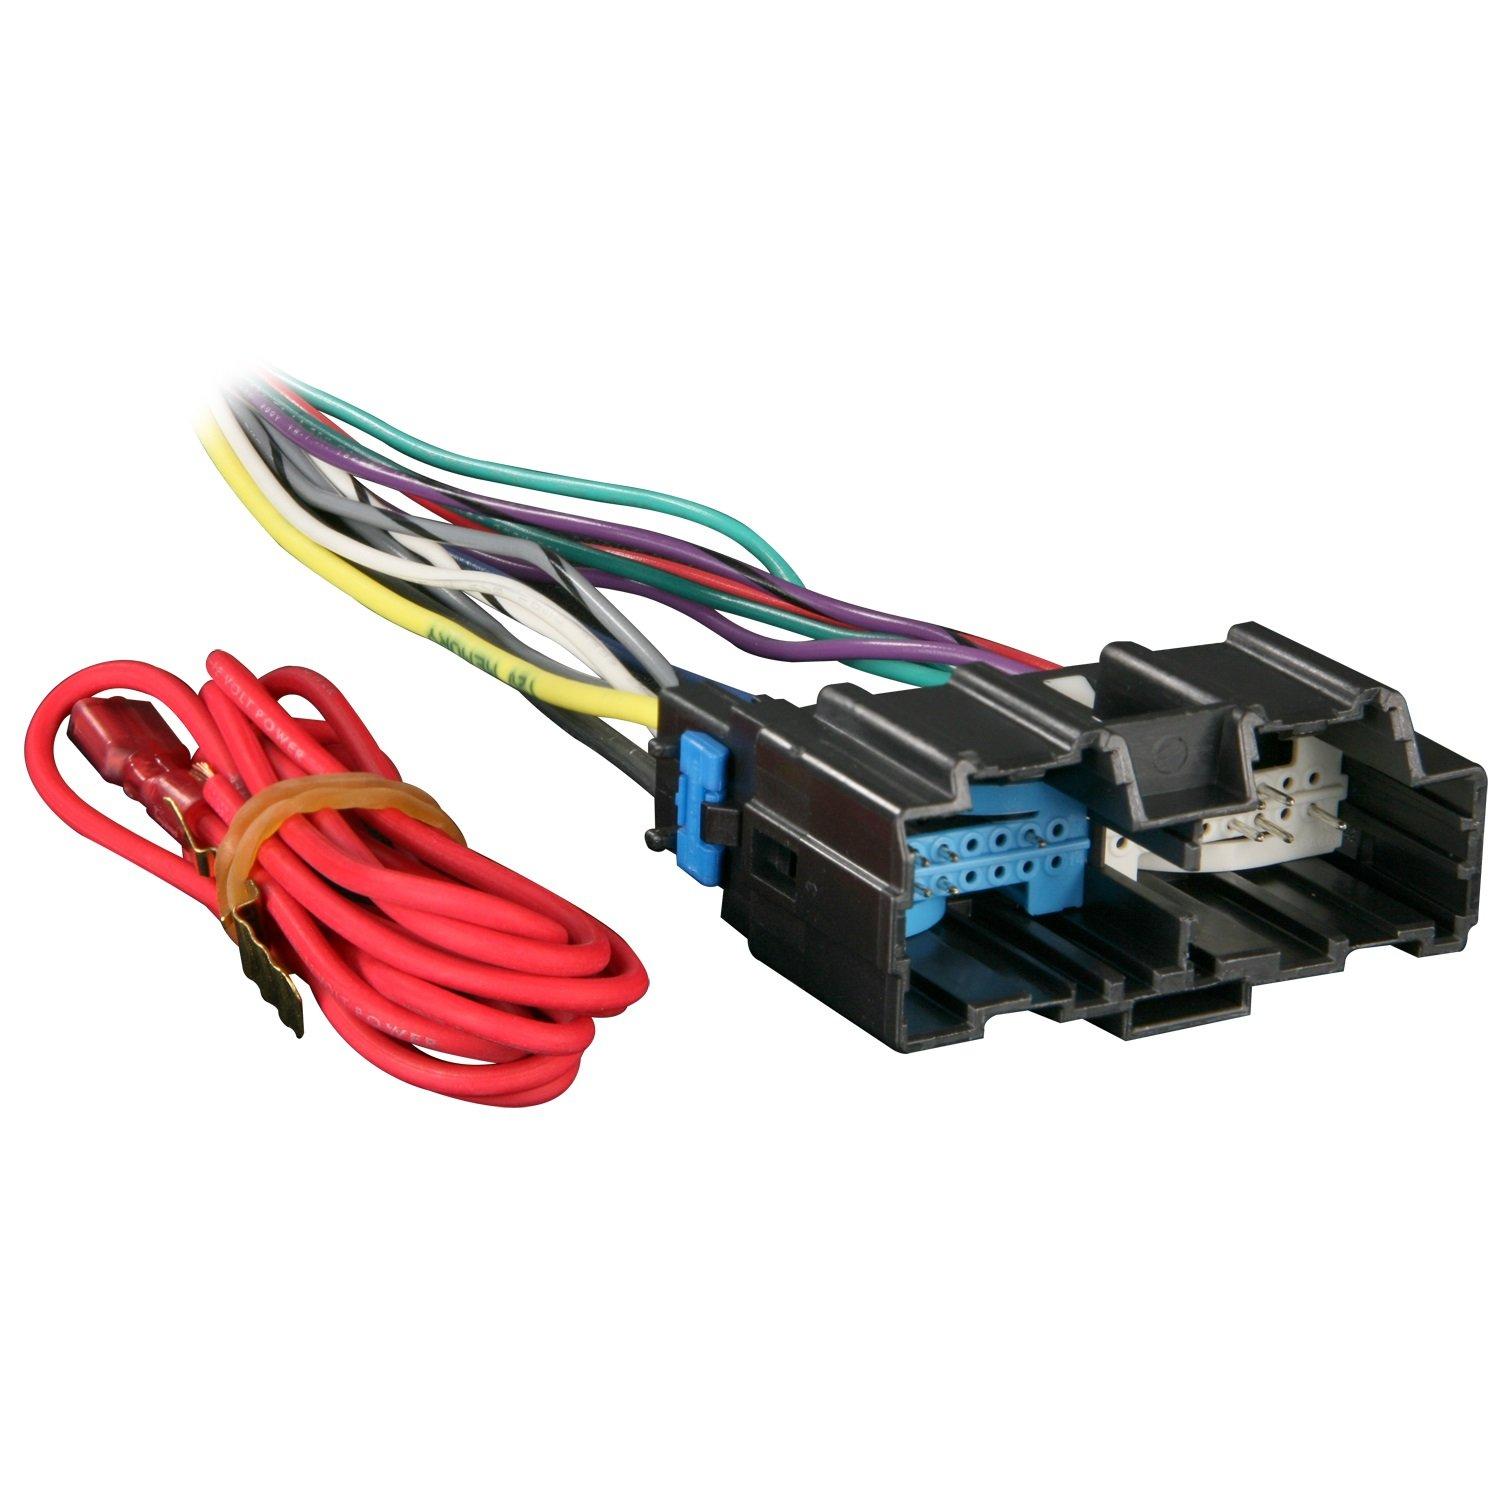 71ZzH dyg7L._SL1500_ amazon com metra 70 2105 radio wiring harness for impala monte 2007 chevy impala wiring harness color code at crackthecode.co